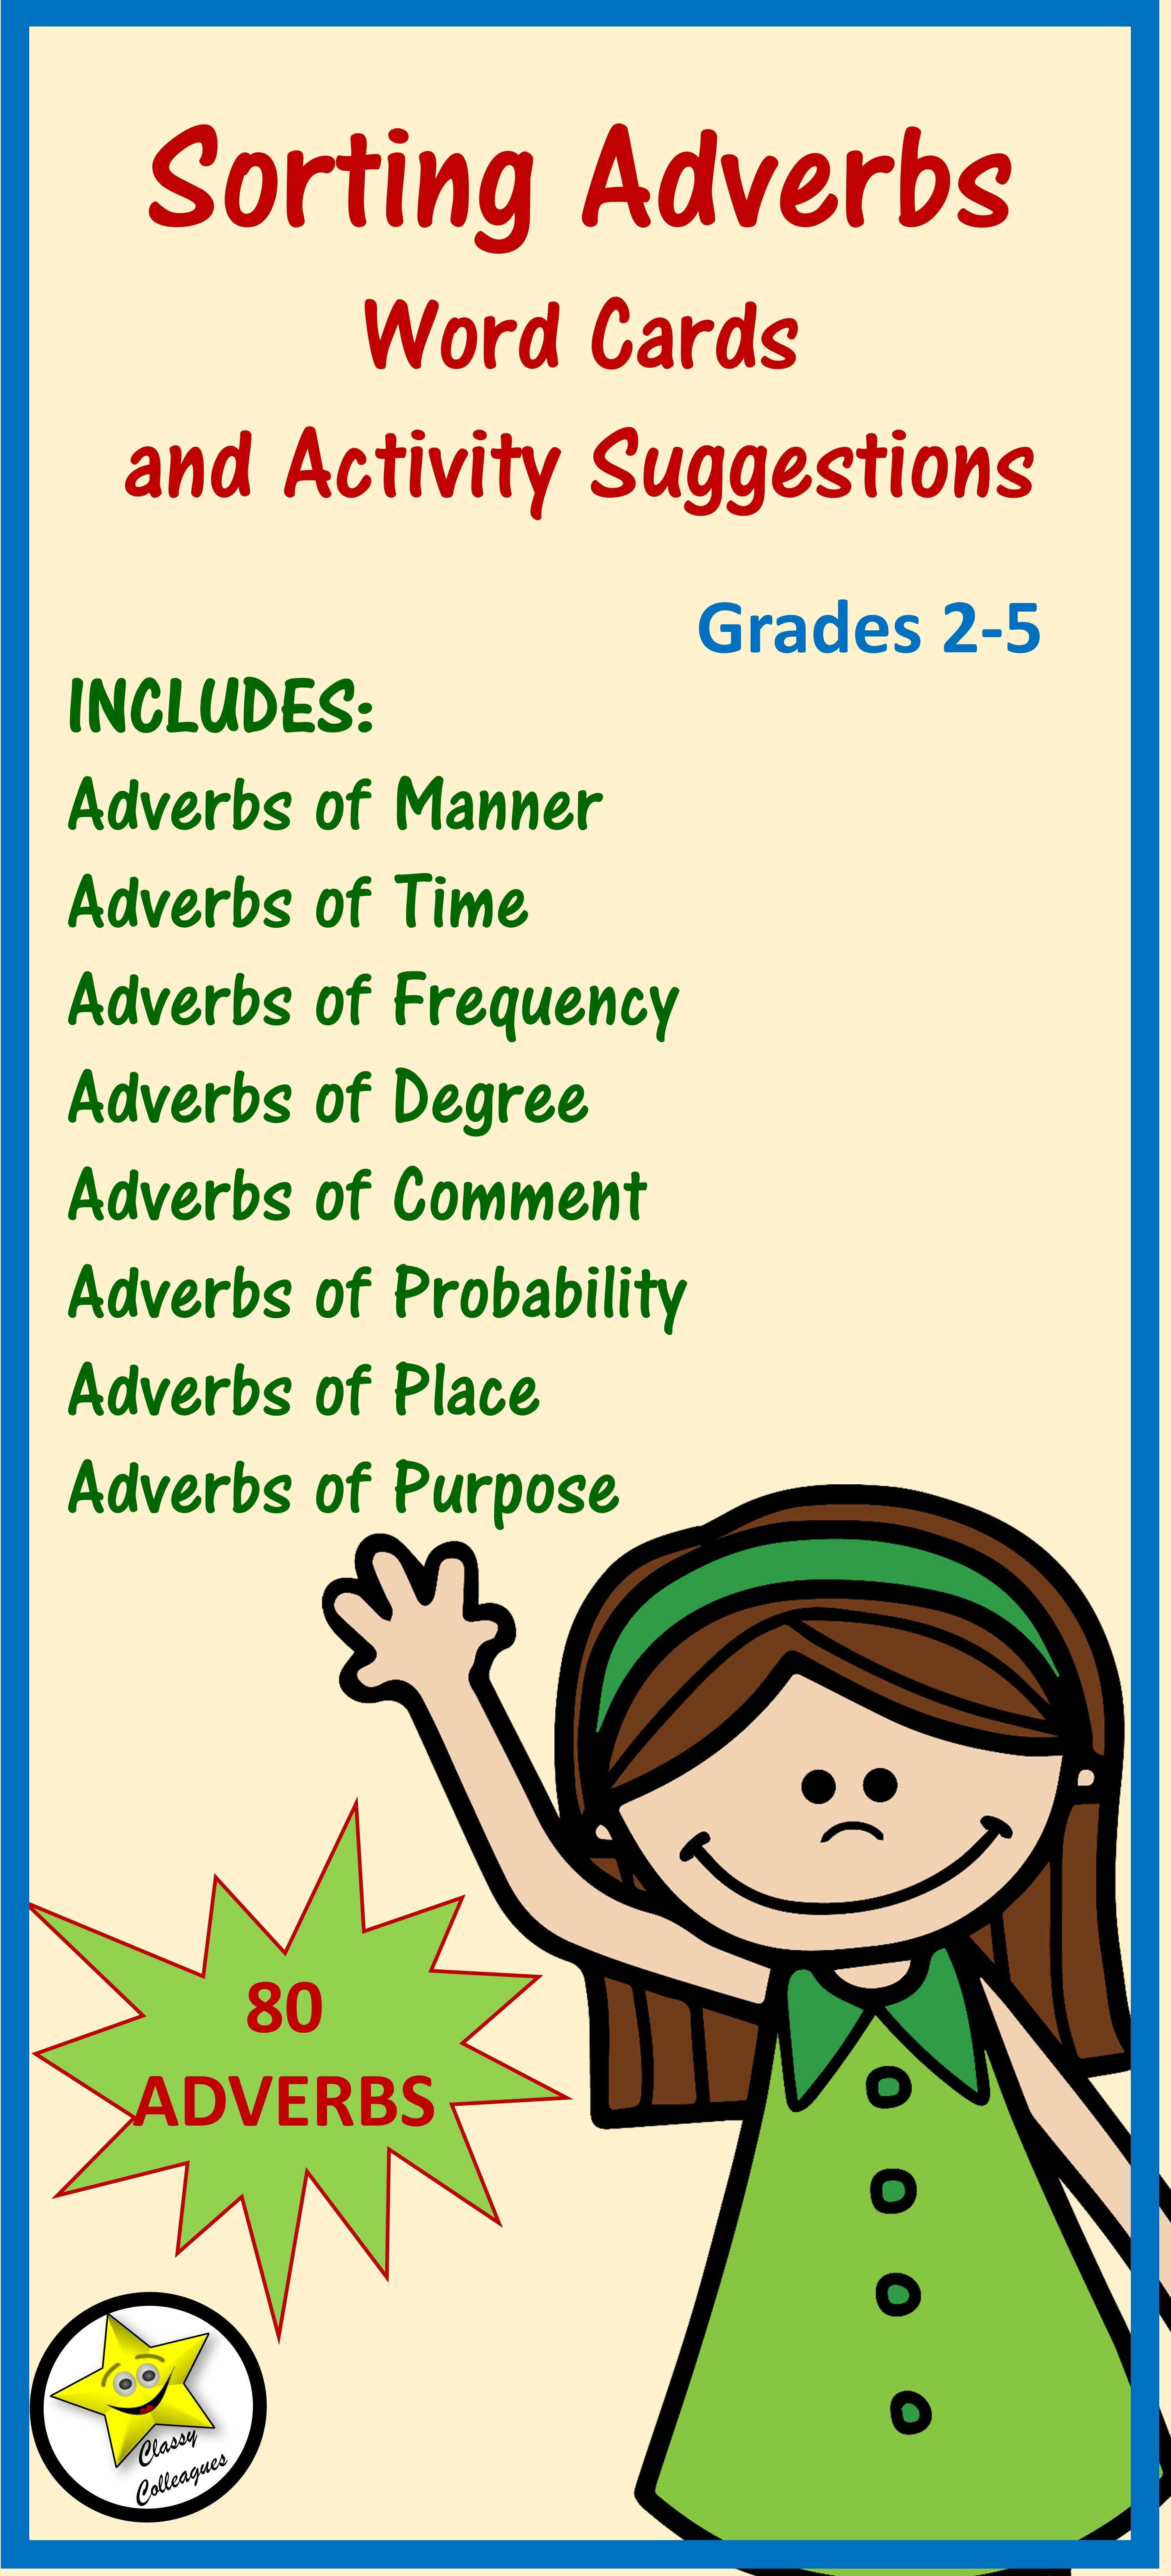 Worksheet For Kinds Of Adverbs For Class 5   Printable Worksheets and  Activities for Teachers [ 6600 x 3000 Pixel ]